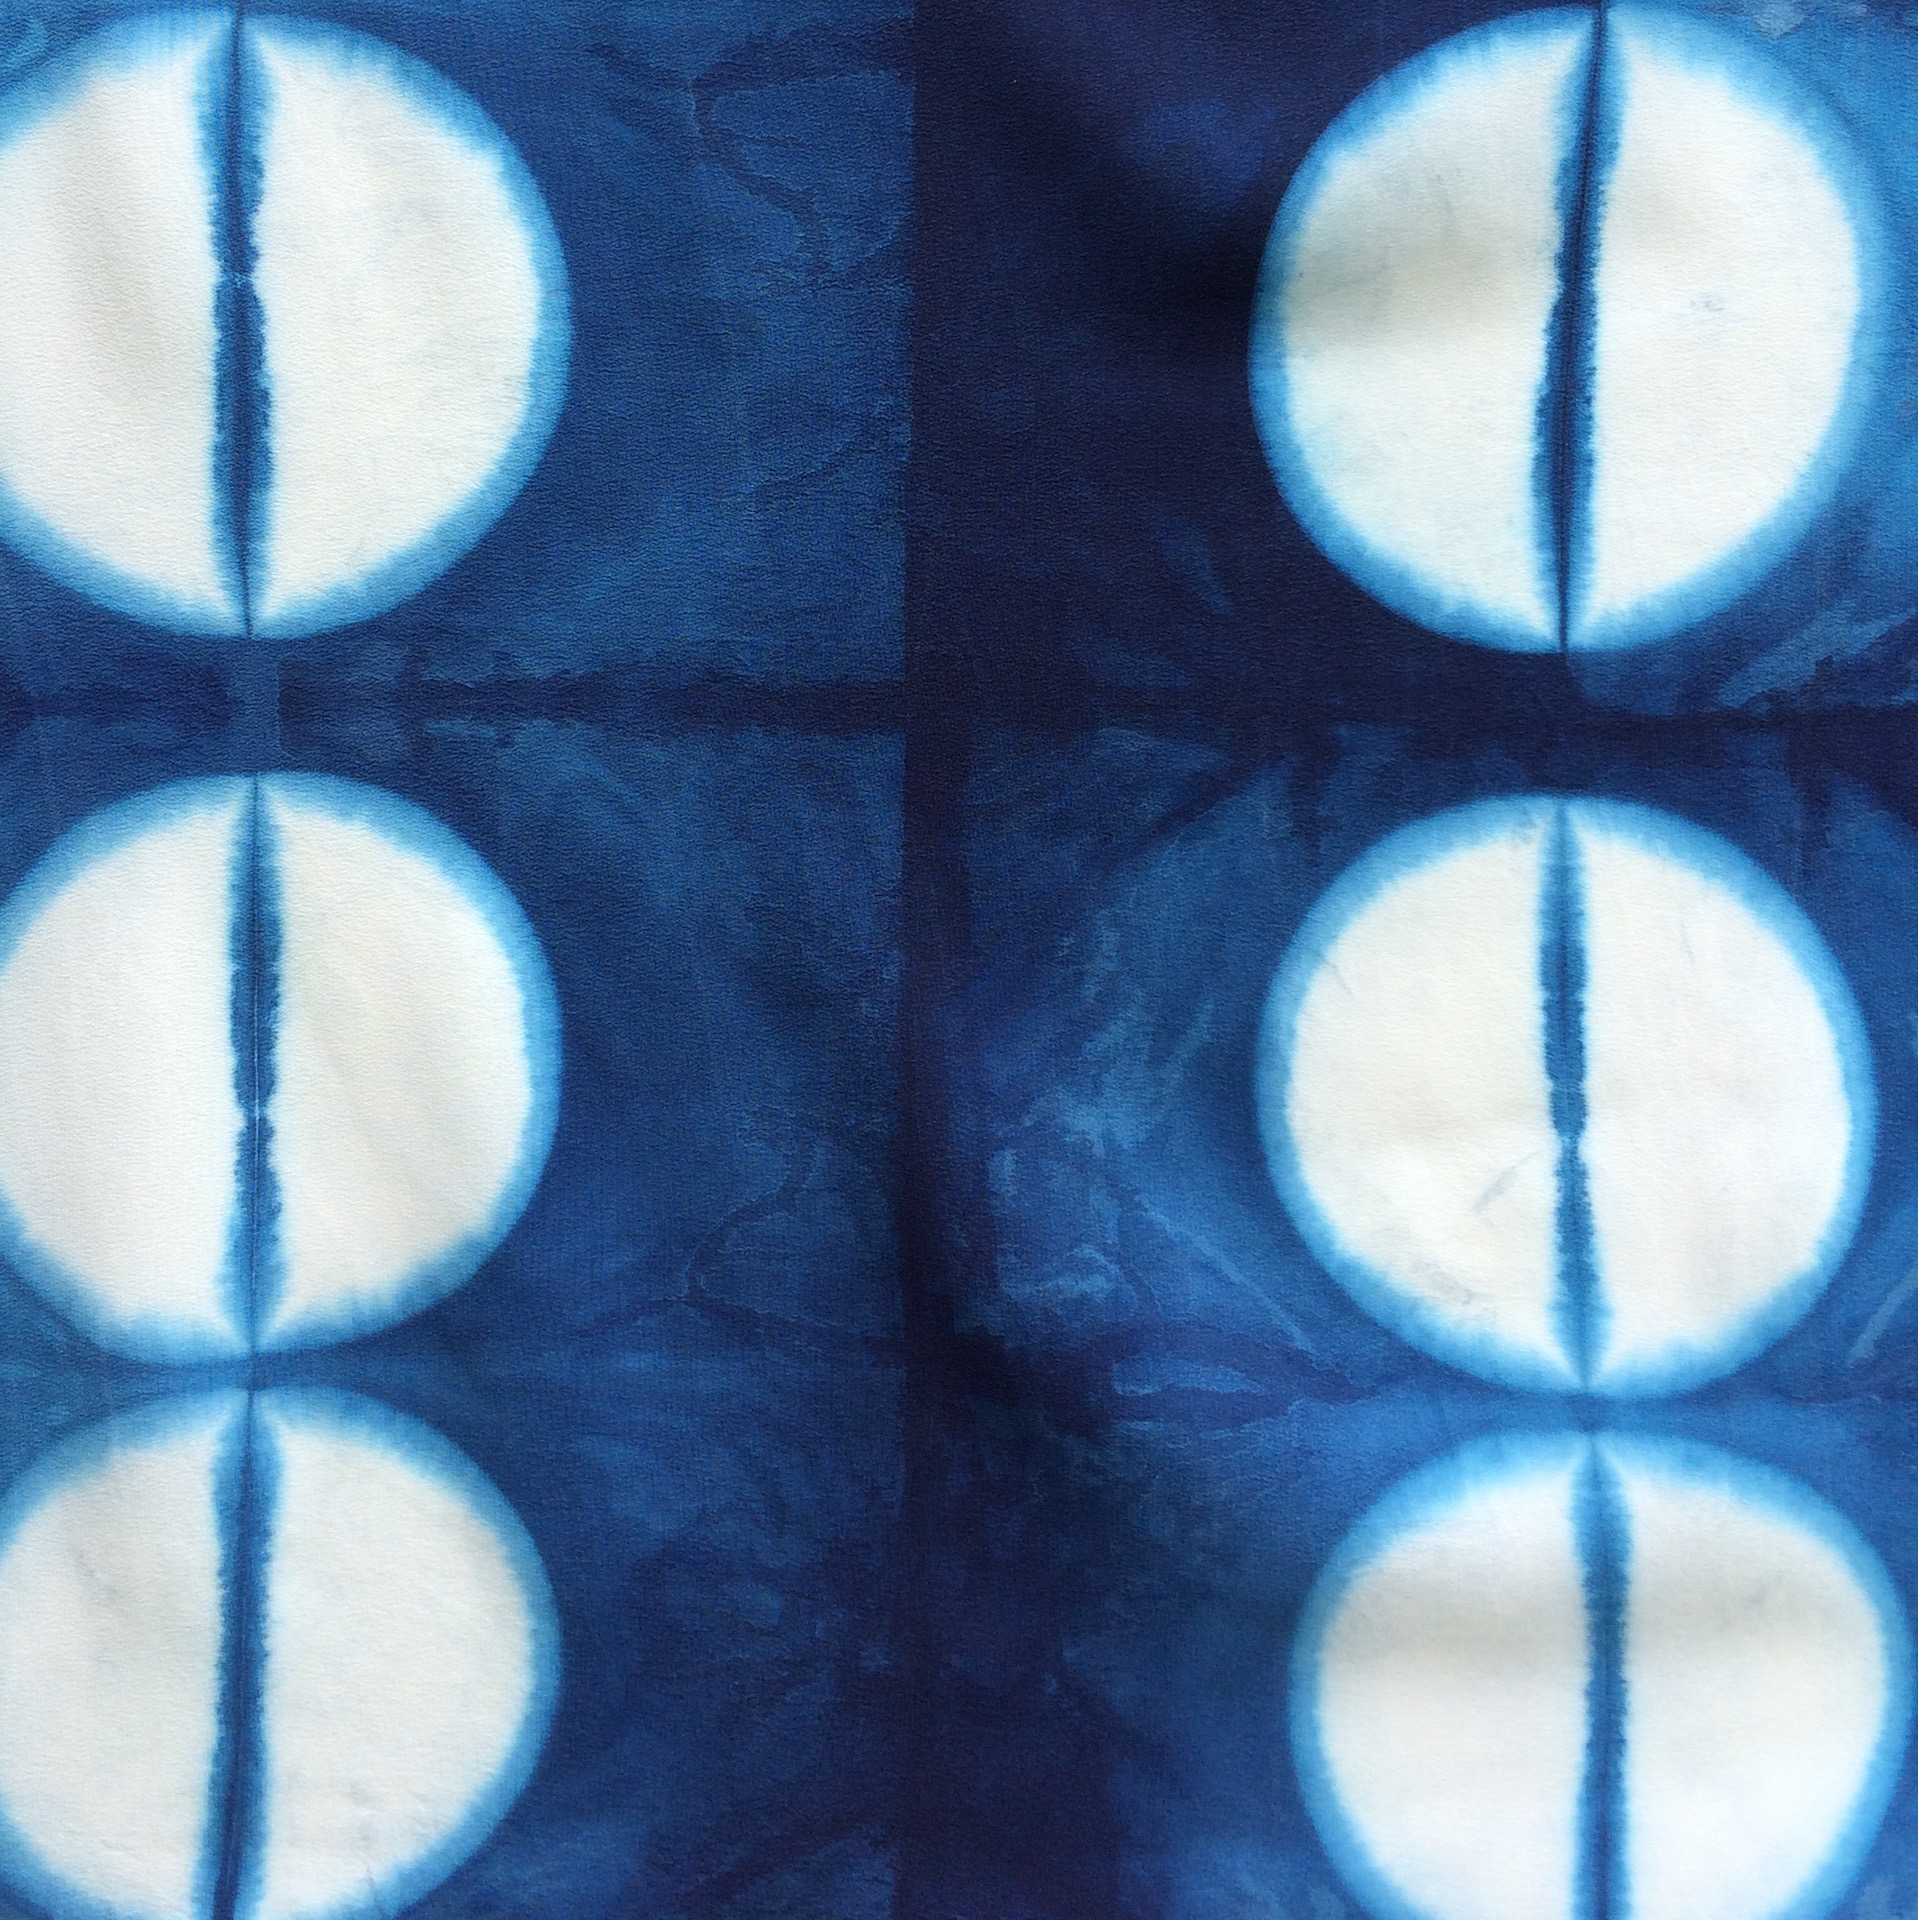 Shibori and Indigo dye design by Lara Mantell